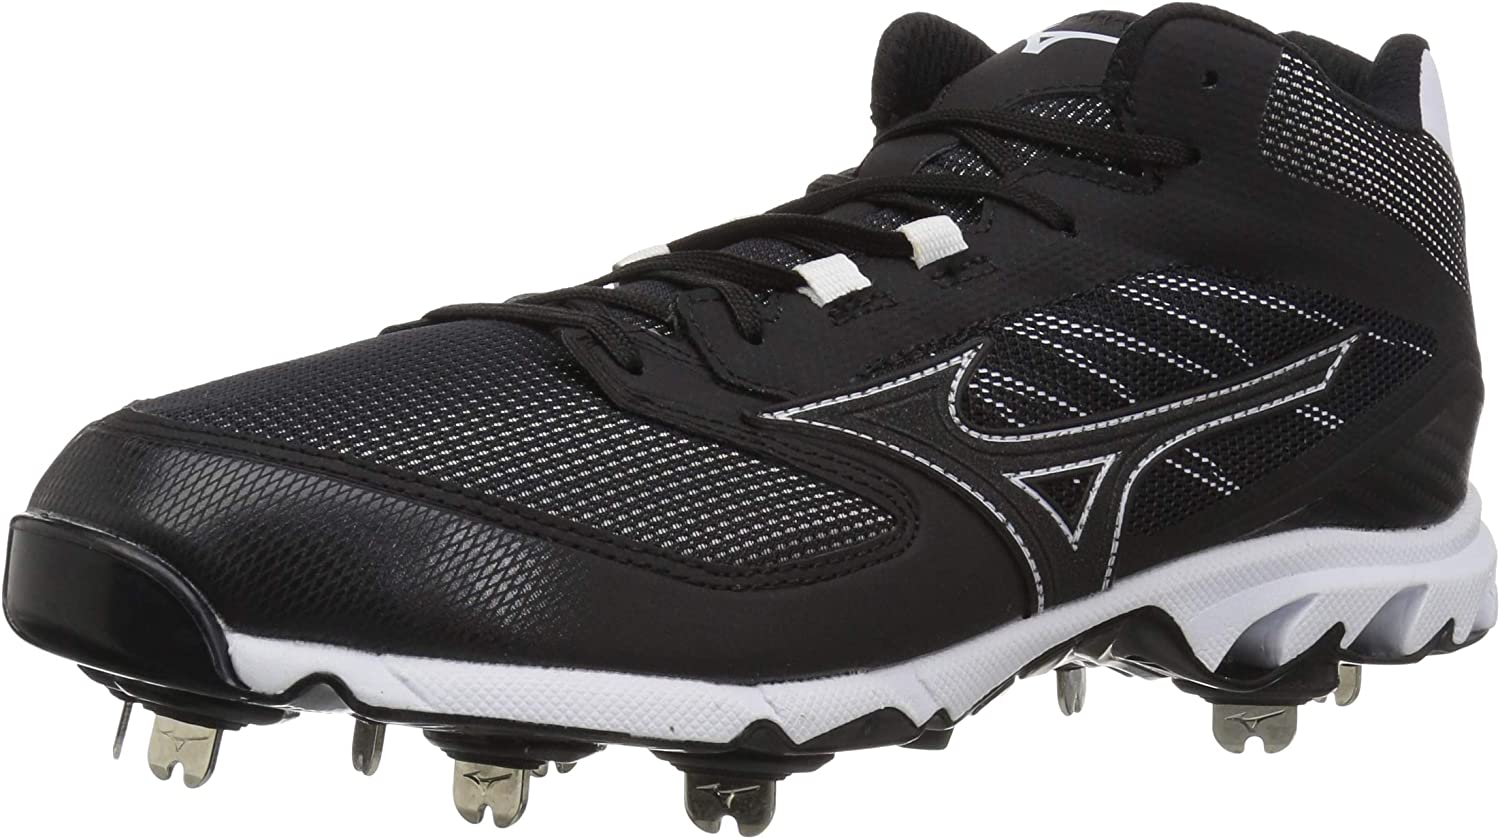 Mizuno Men's 9-Spike Dominant Ranking integrated 1st place IC Cleat Athlet Mid Baseball OFFicial site Metal